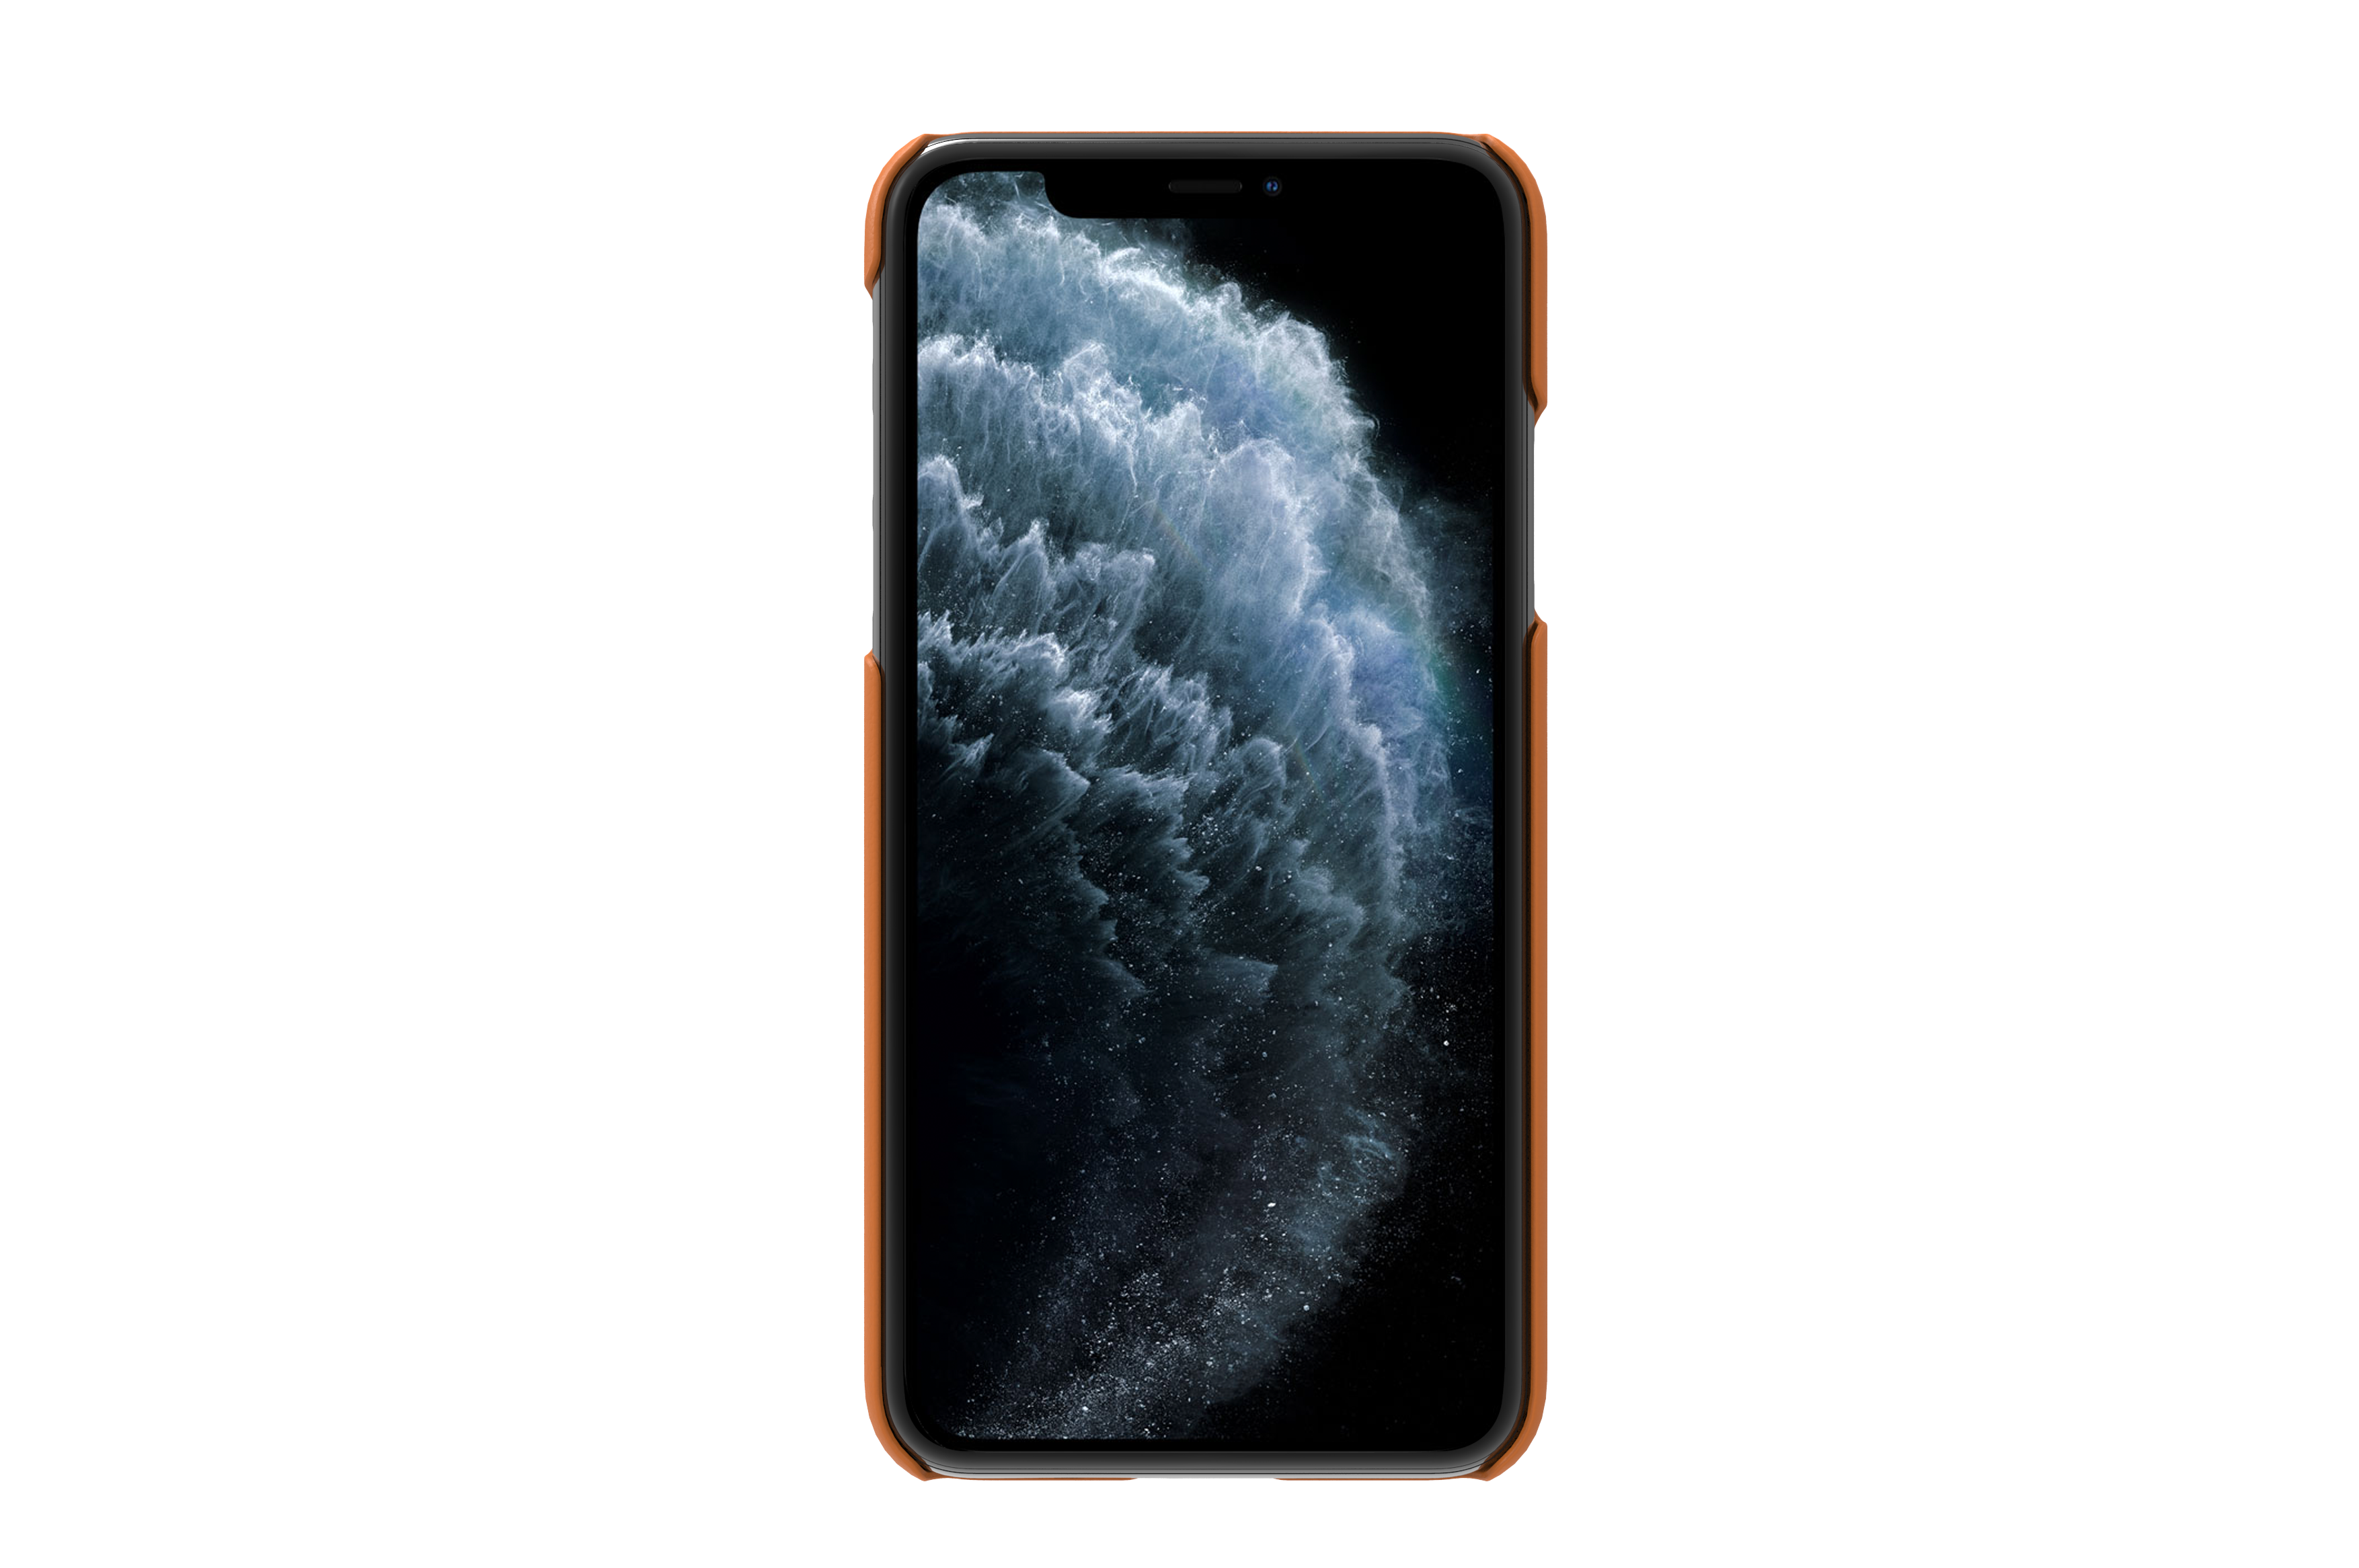 iphone11 pro max brown-2